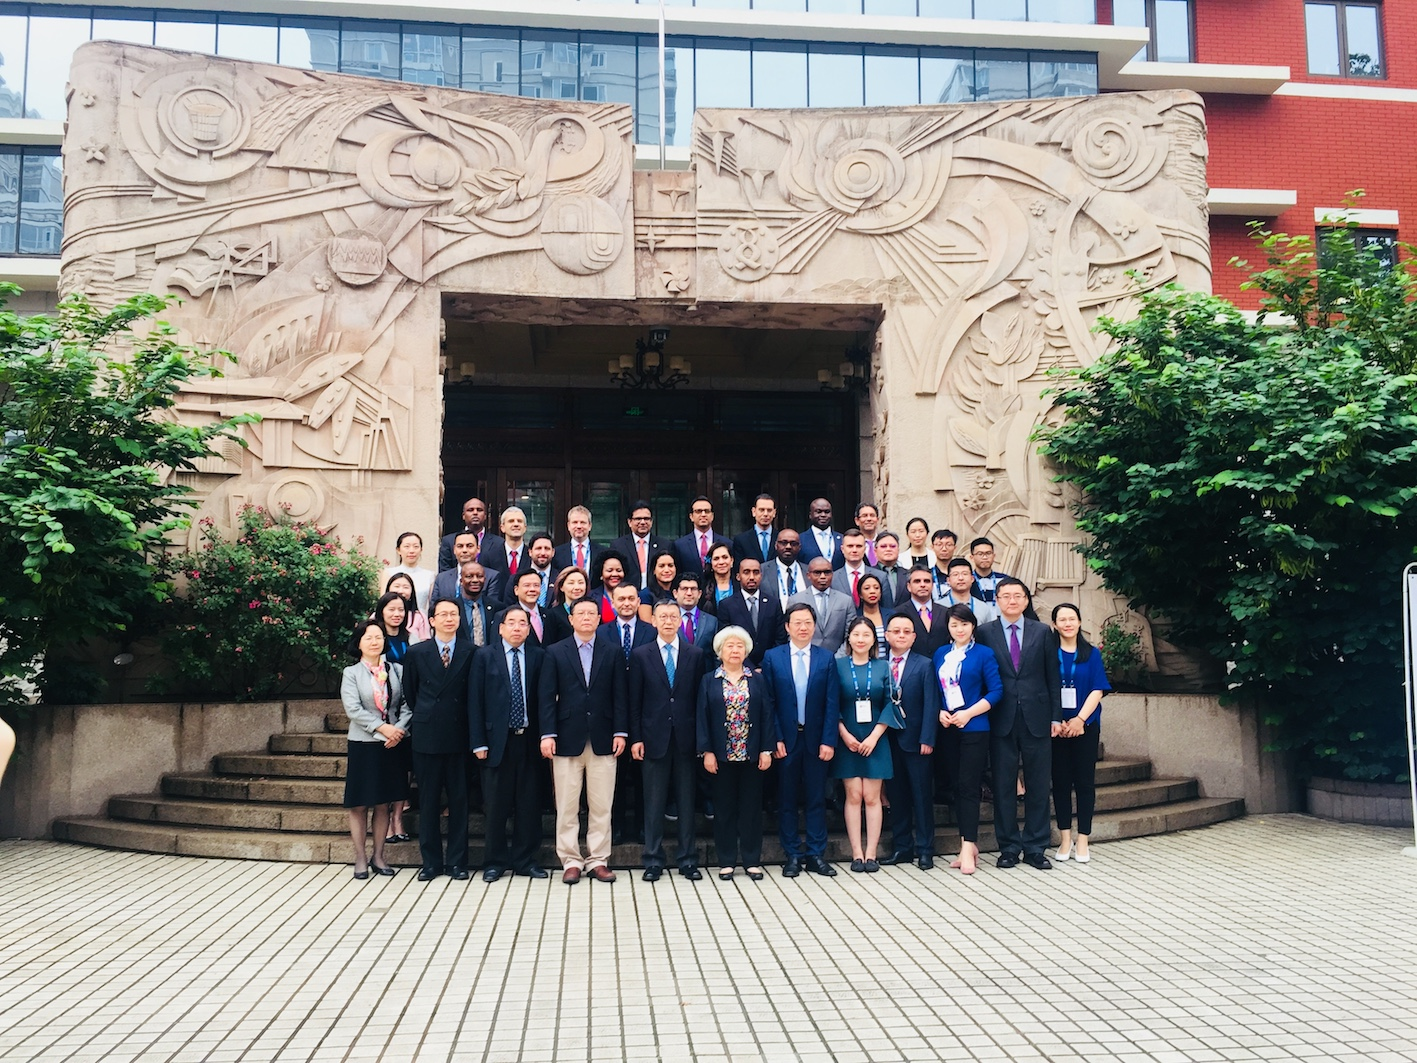 South-South cooperation program begins in Beijing at Tsinghua University on May 21